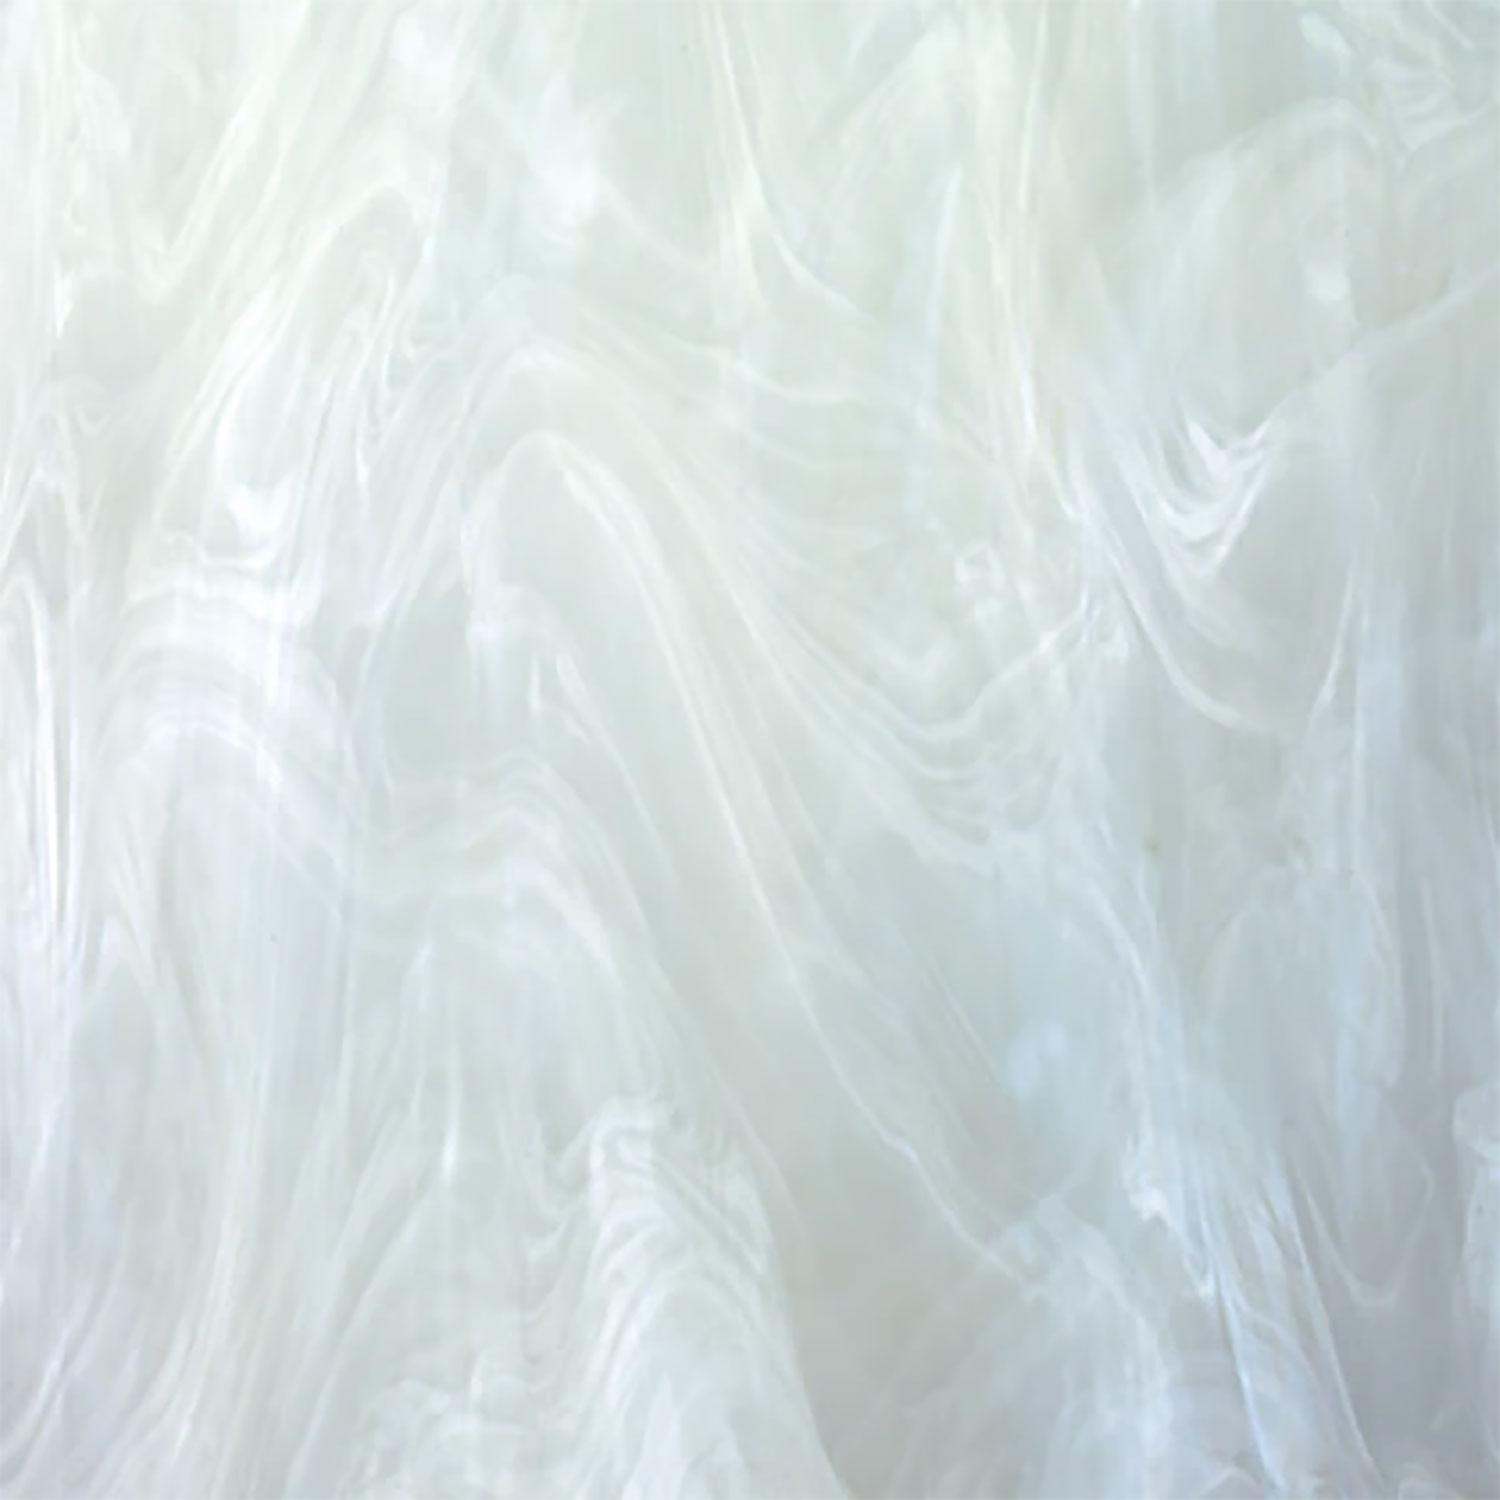 Oceanside White & Clear Translucent Wispy - 96 COE